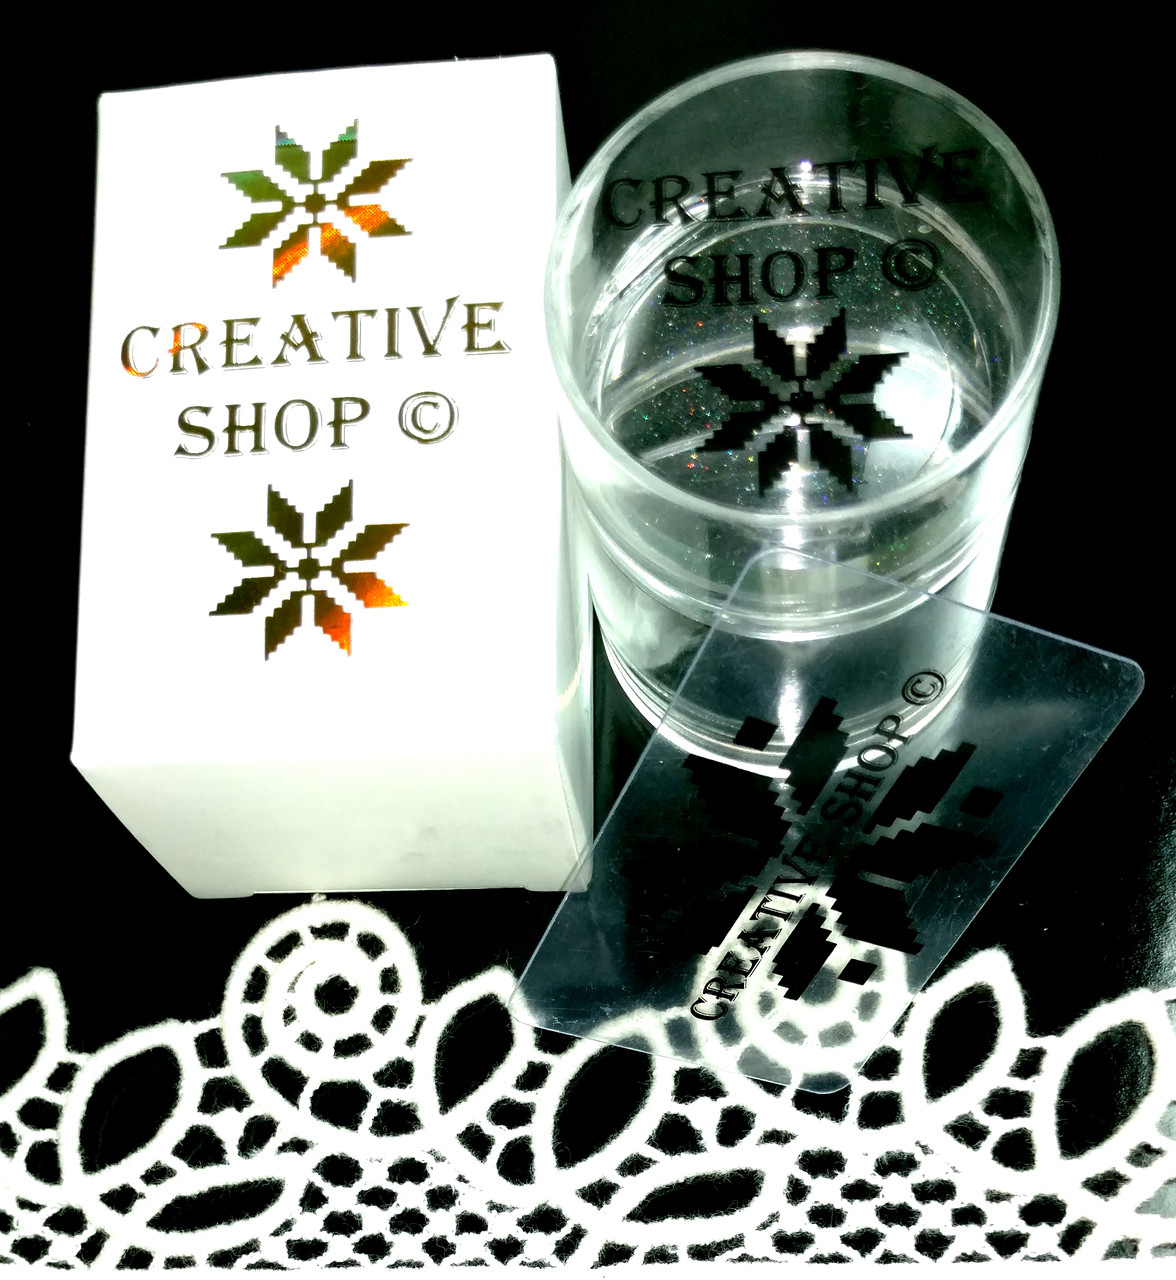 Creative Shop holographic clear jelly nail stamper with extra stamping head. Available at www.lanternandwren.com.